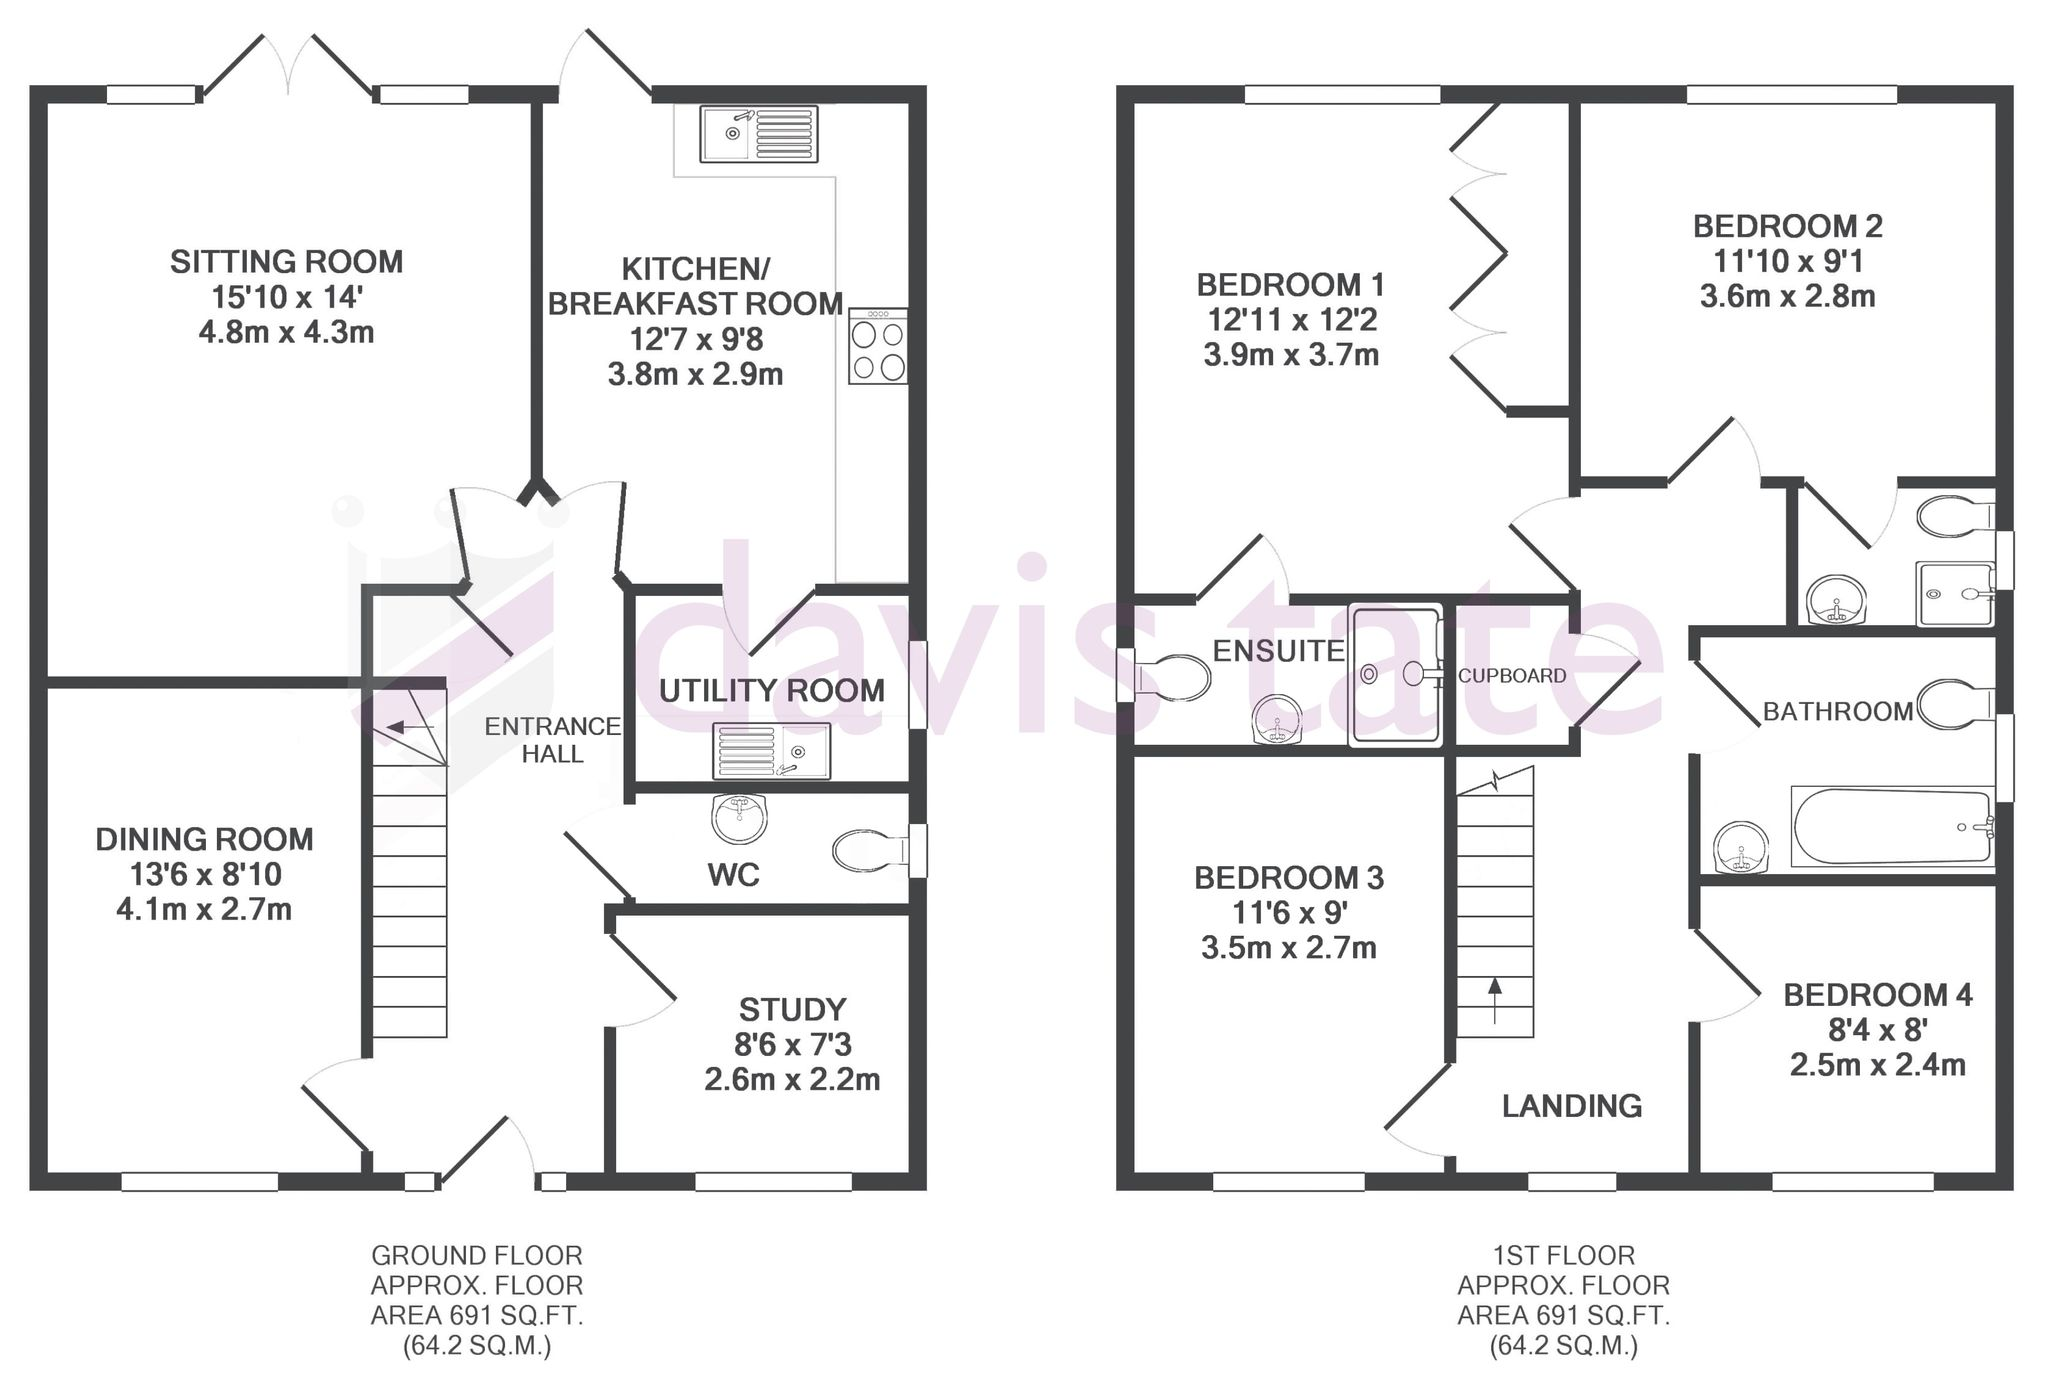 4SkylarkWayShinfield floorplan2